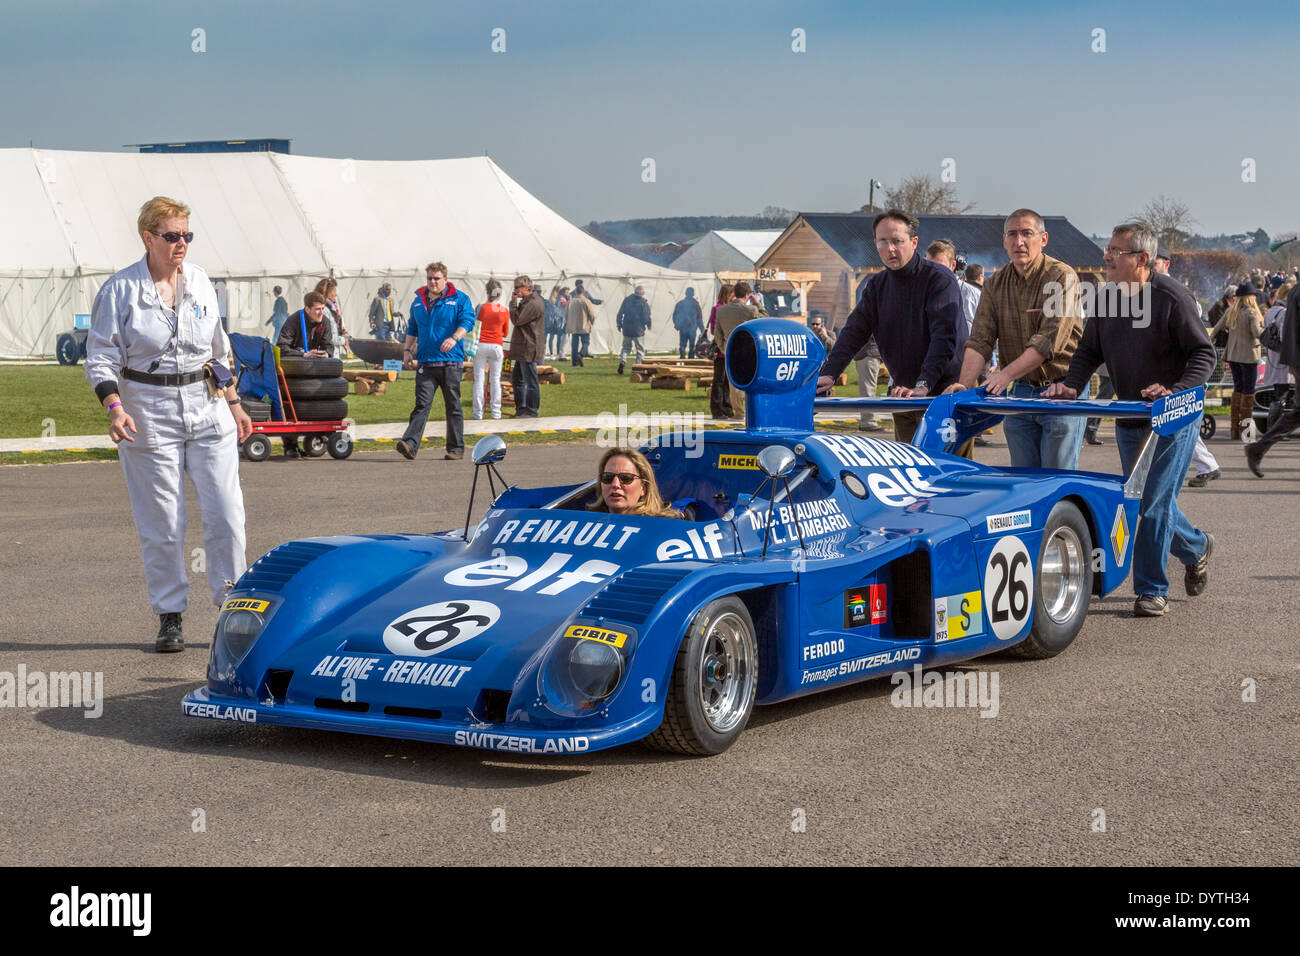 1975 alpine renault a441 is pushed to the collection paddock stock photo royalty free image. Black Bedroom Furniture Sets. Home Design Ideas